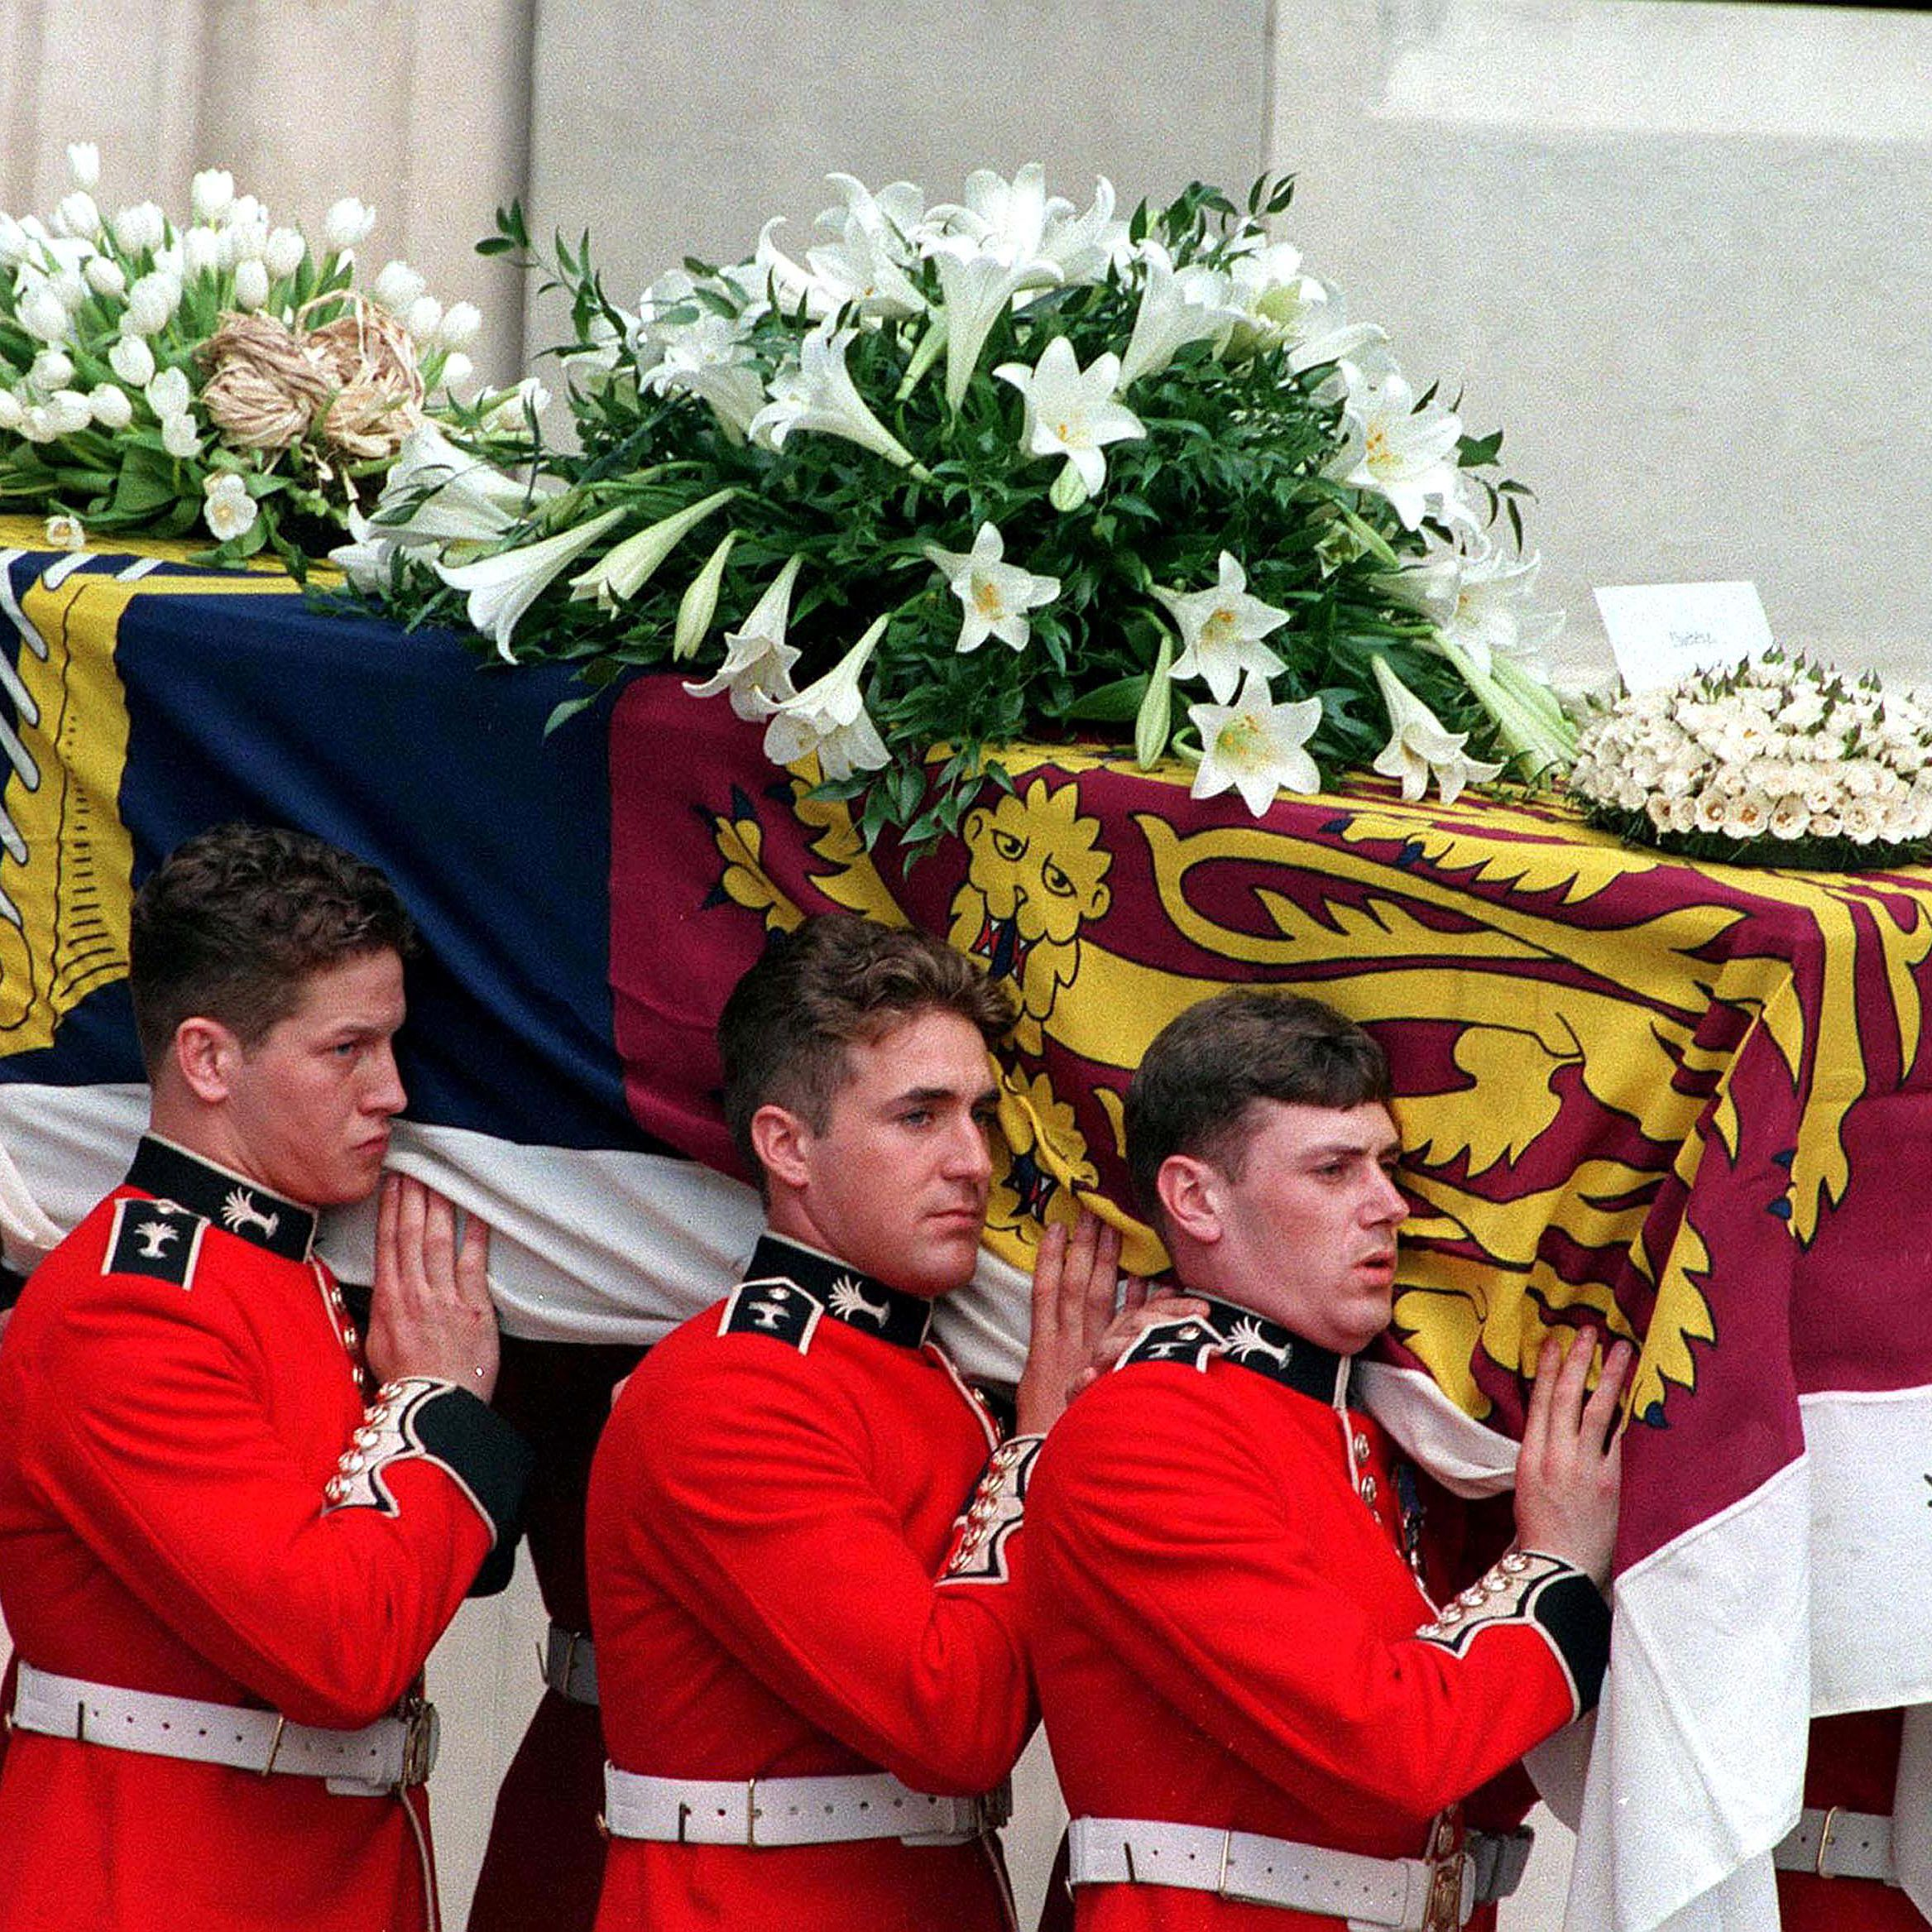 Princess Diana S Funeral Half Of The World Watched